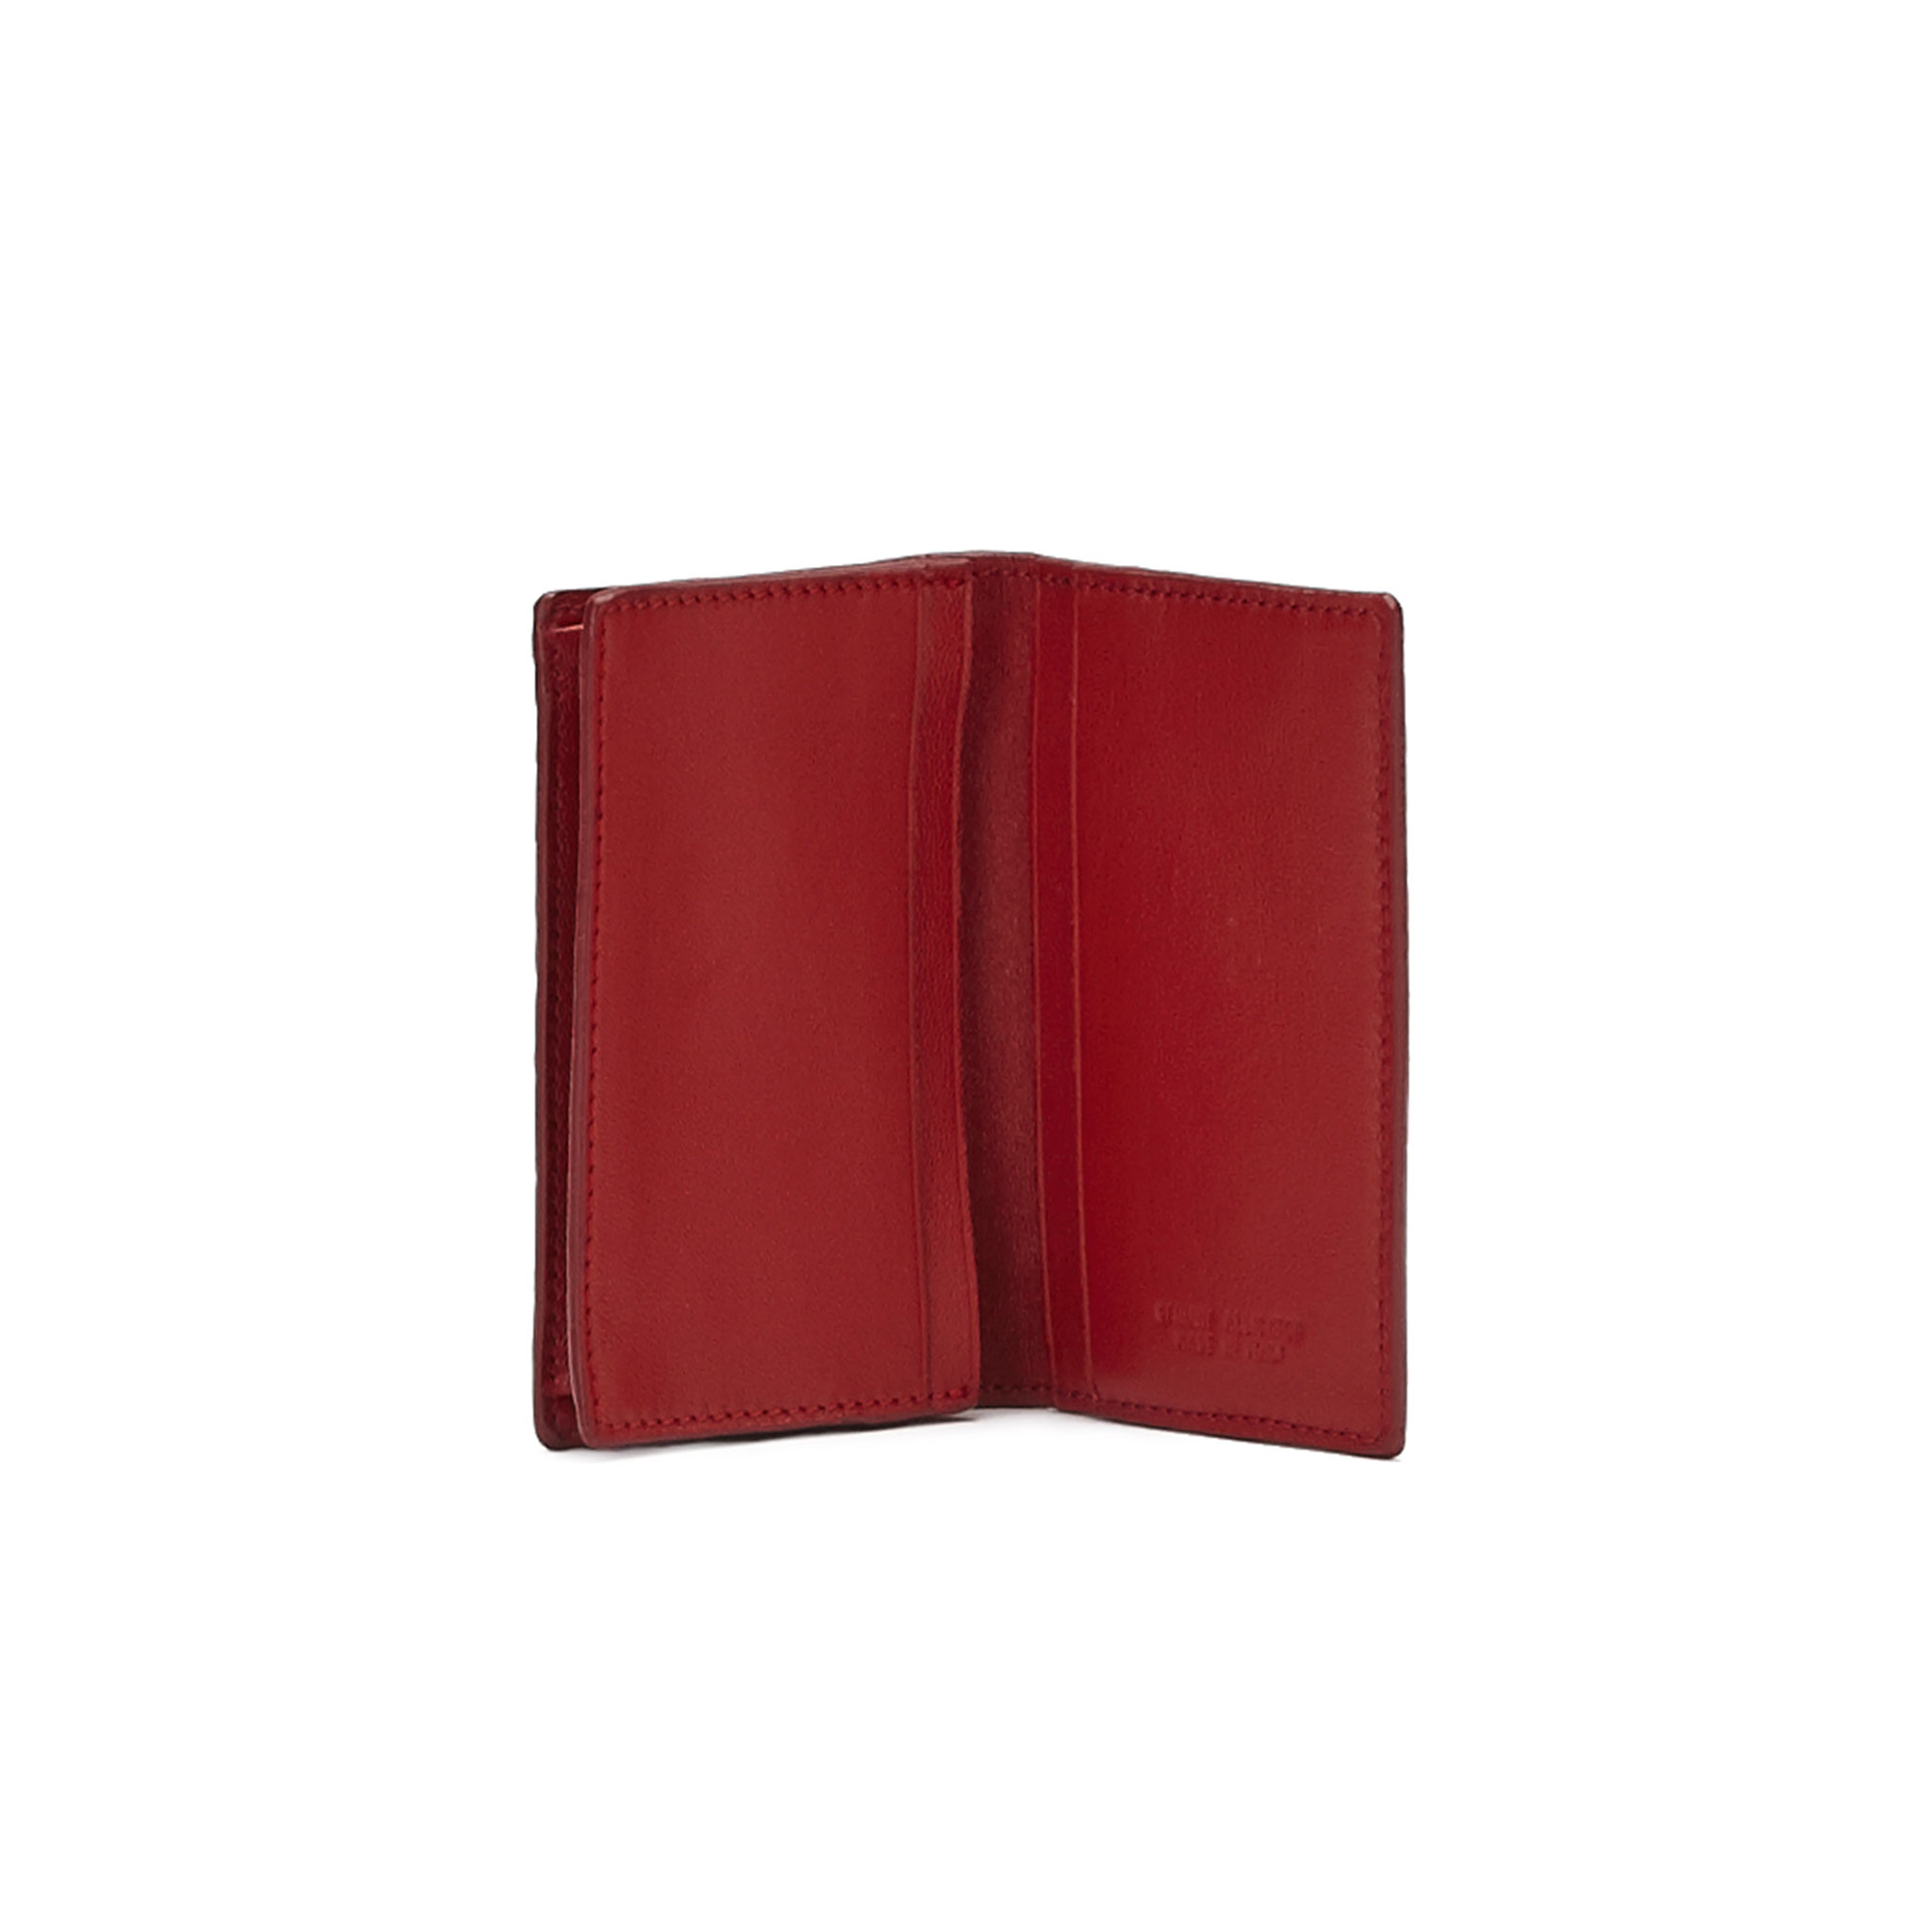 The red alligator Business Card Holder by Bertoni 1949 02